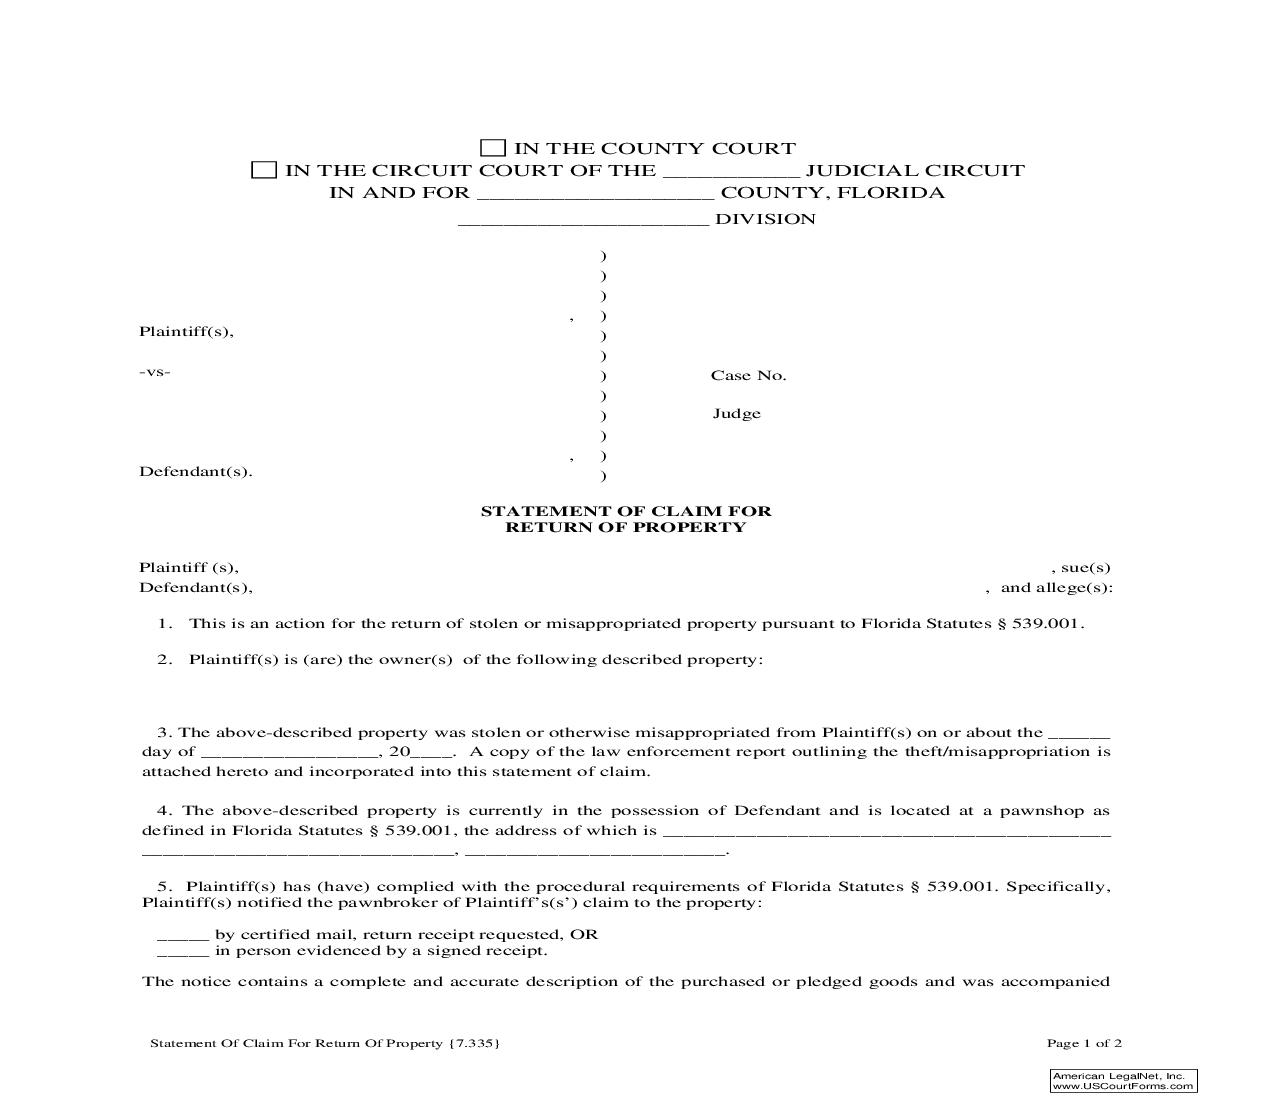 Statement Of Claim For Return Of Property {7.335} | Pdf Fpdf Doc Docx | Florida